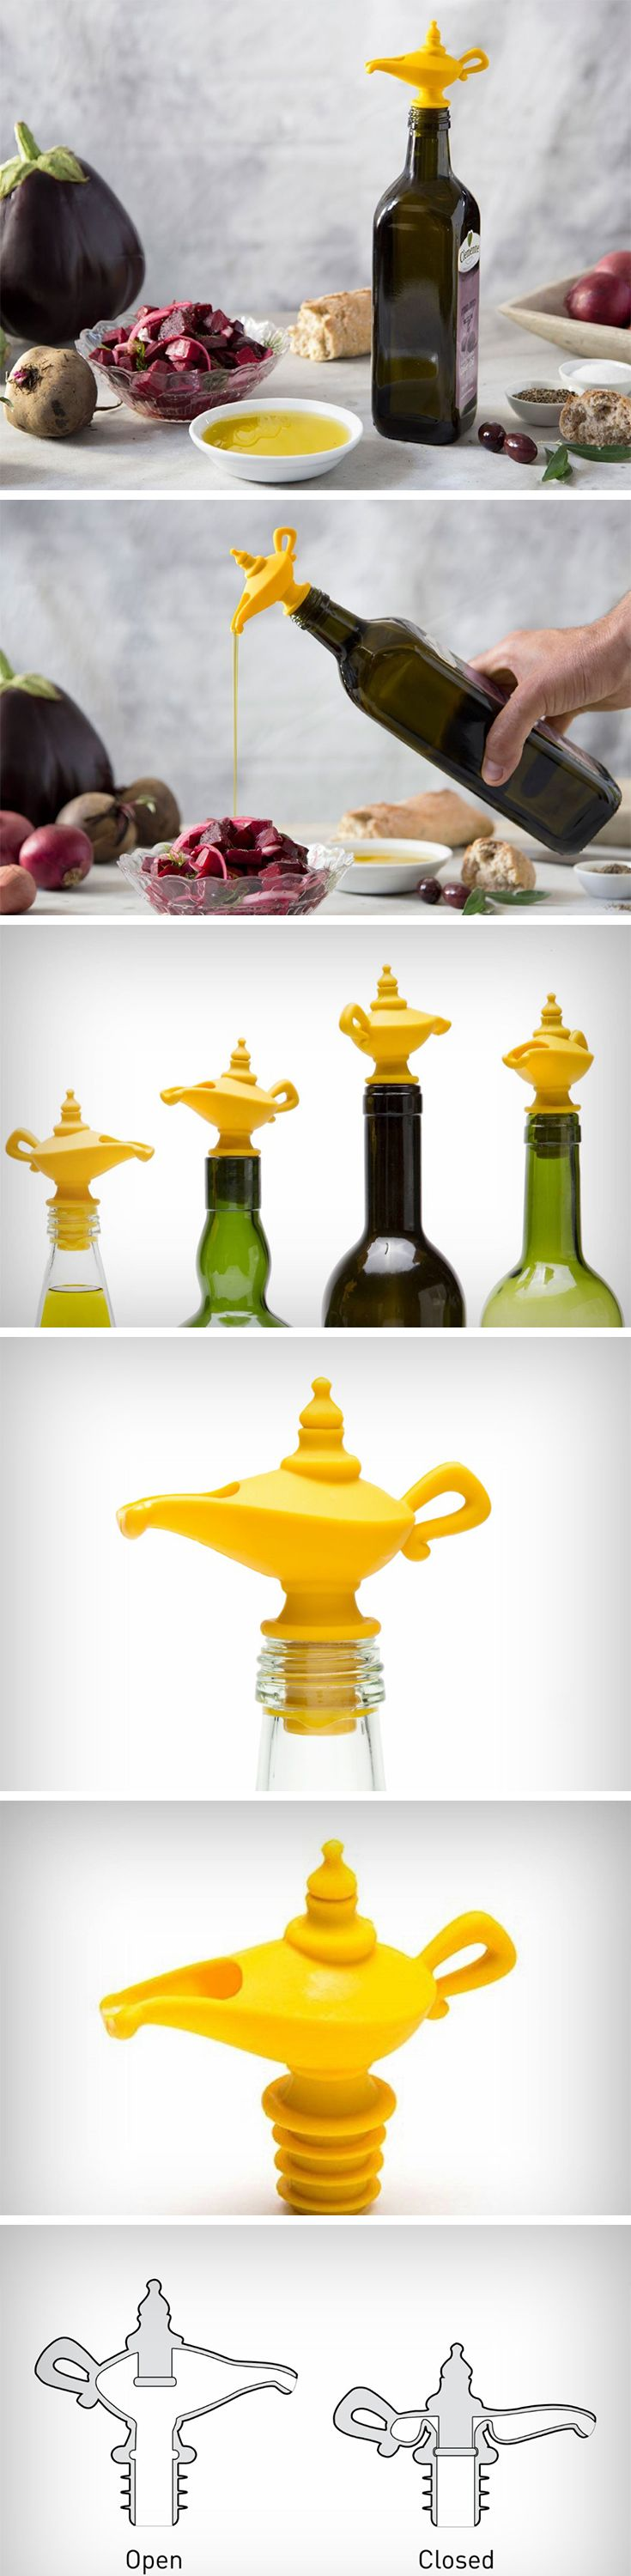 The Oiladdin is appropriate in absolutely every way, because it takes inspiration from the oil lamps used back in the olden days, and uses it as a snout/pourer for an oil bottle! Made entirely out of silicone, the soft construction allows it to securely fit into almost all glass bottles, while the upper part of the lamp can be pressed down to even shut the bottle. BUY NOW!